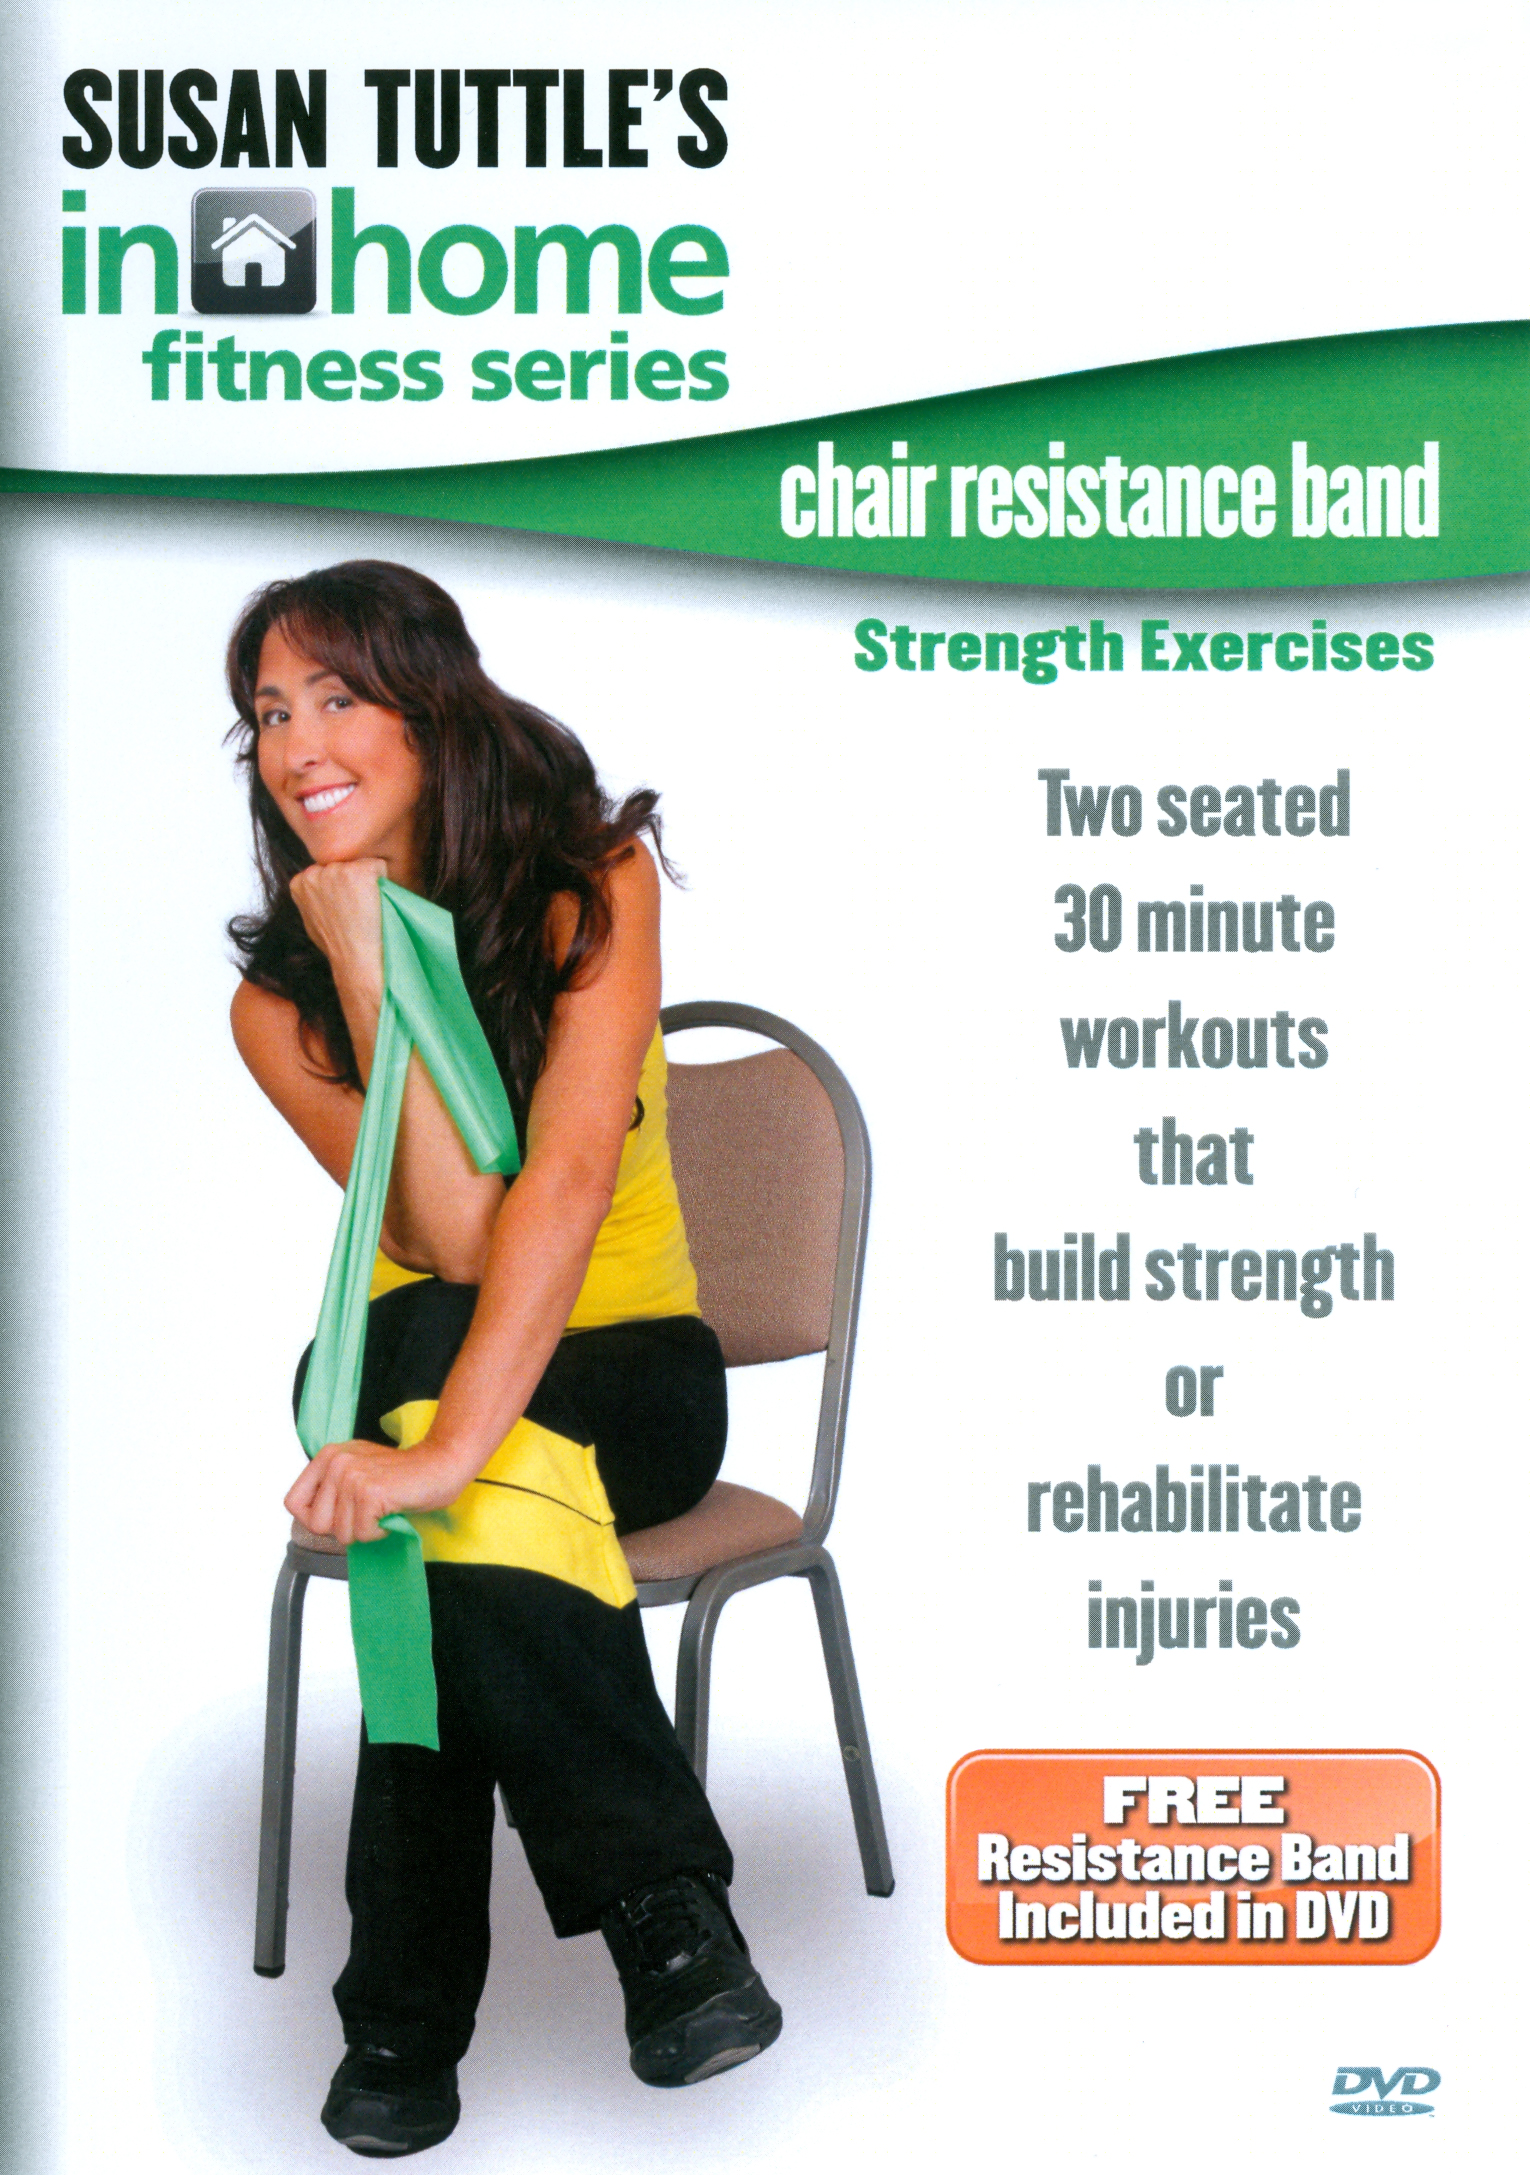 Susan Tuttle's In Home Fitness: Chair Resistance Band Strength Exercises